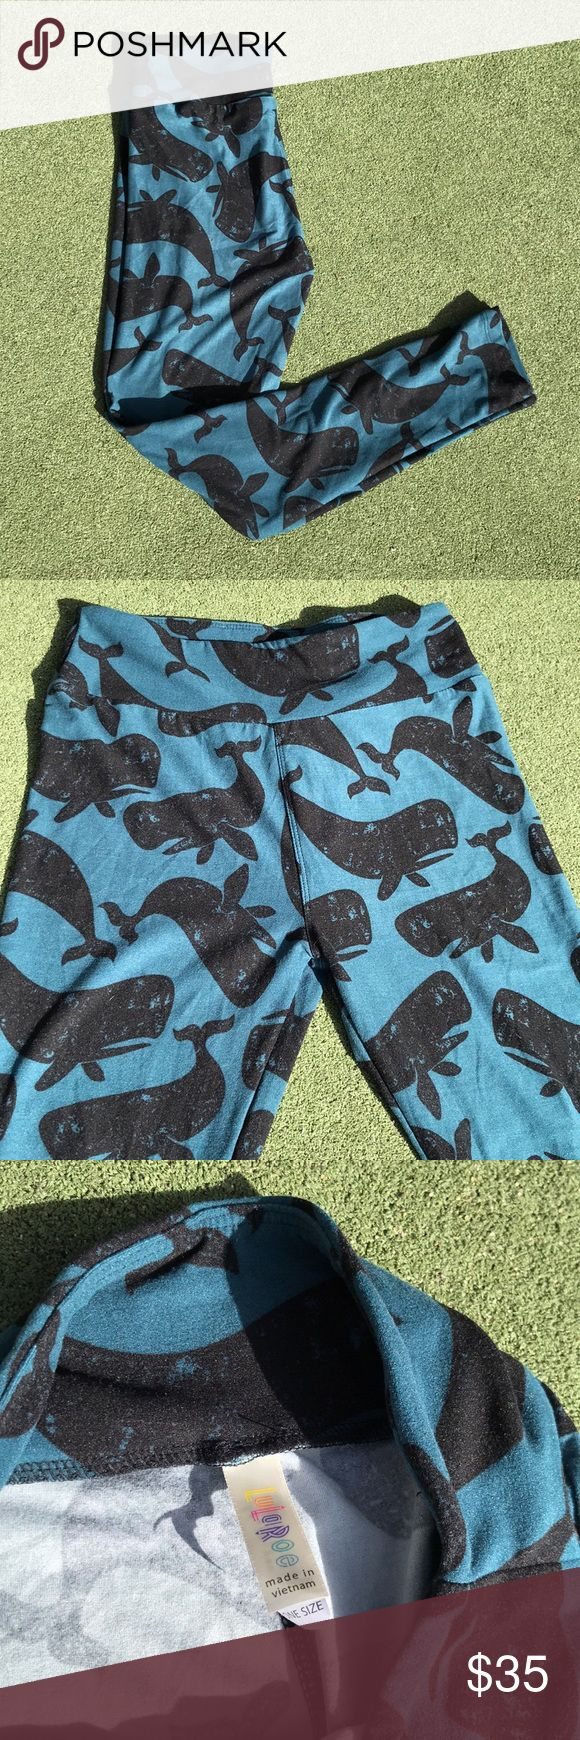 LuLaRoe One Size Whale Leggings LuLaRoe One Size Whale Leggings.  Brand new, never worn, LuLaRoe does not attach tags to most leggings.  Super soft and very stretchy. Smoke free home. Is this your Unicorn, Arrow, Elephant, Disney Roses, Paisley, Tiger, Dinosaur or Owl Print? I provide same or next day shipping, depending on time of purchase. These are some of the most adorable LuLaRoe Leggings I have ever seen. Not sure I want to sell so make your offer good.  Would look great with…